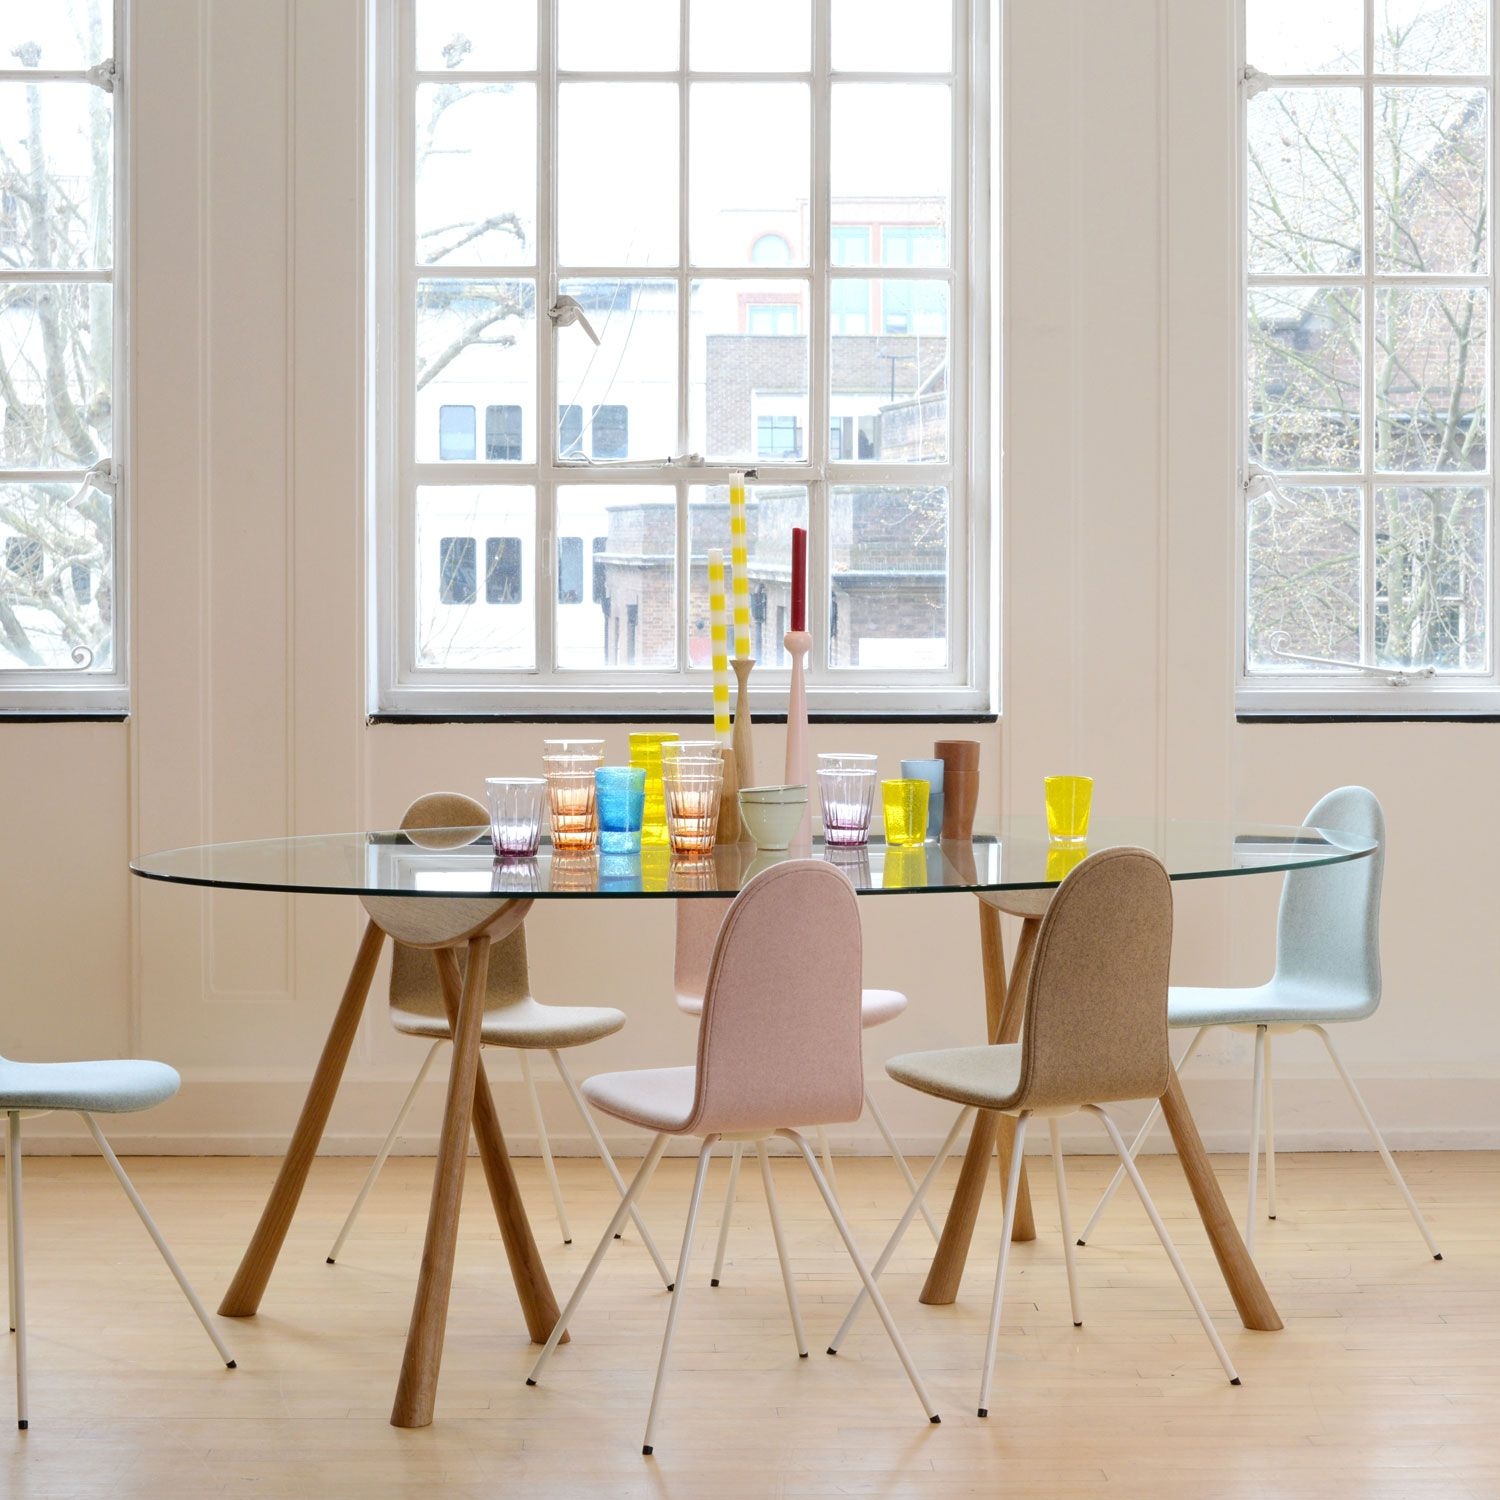 Polyfox Trestle Table And Tongue Chairs At Heals Looking Fresh